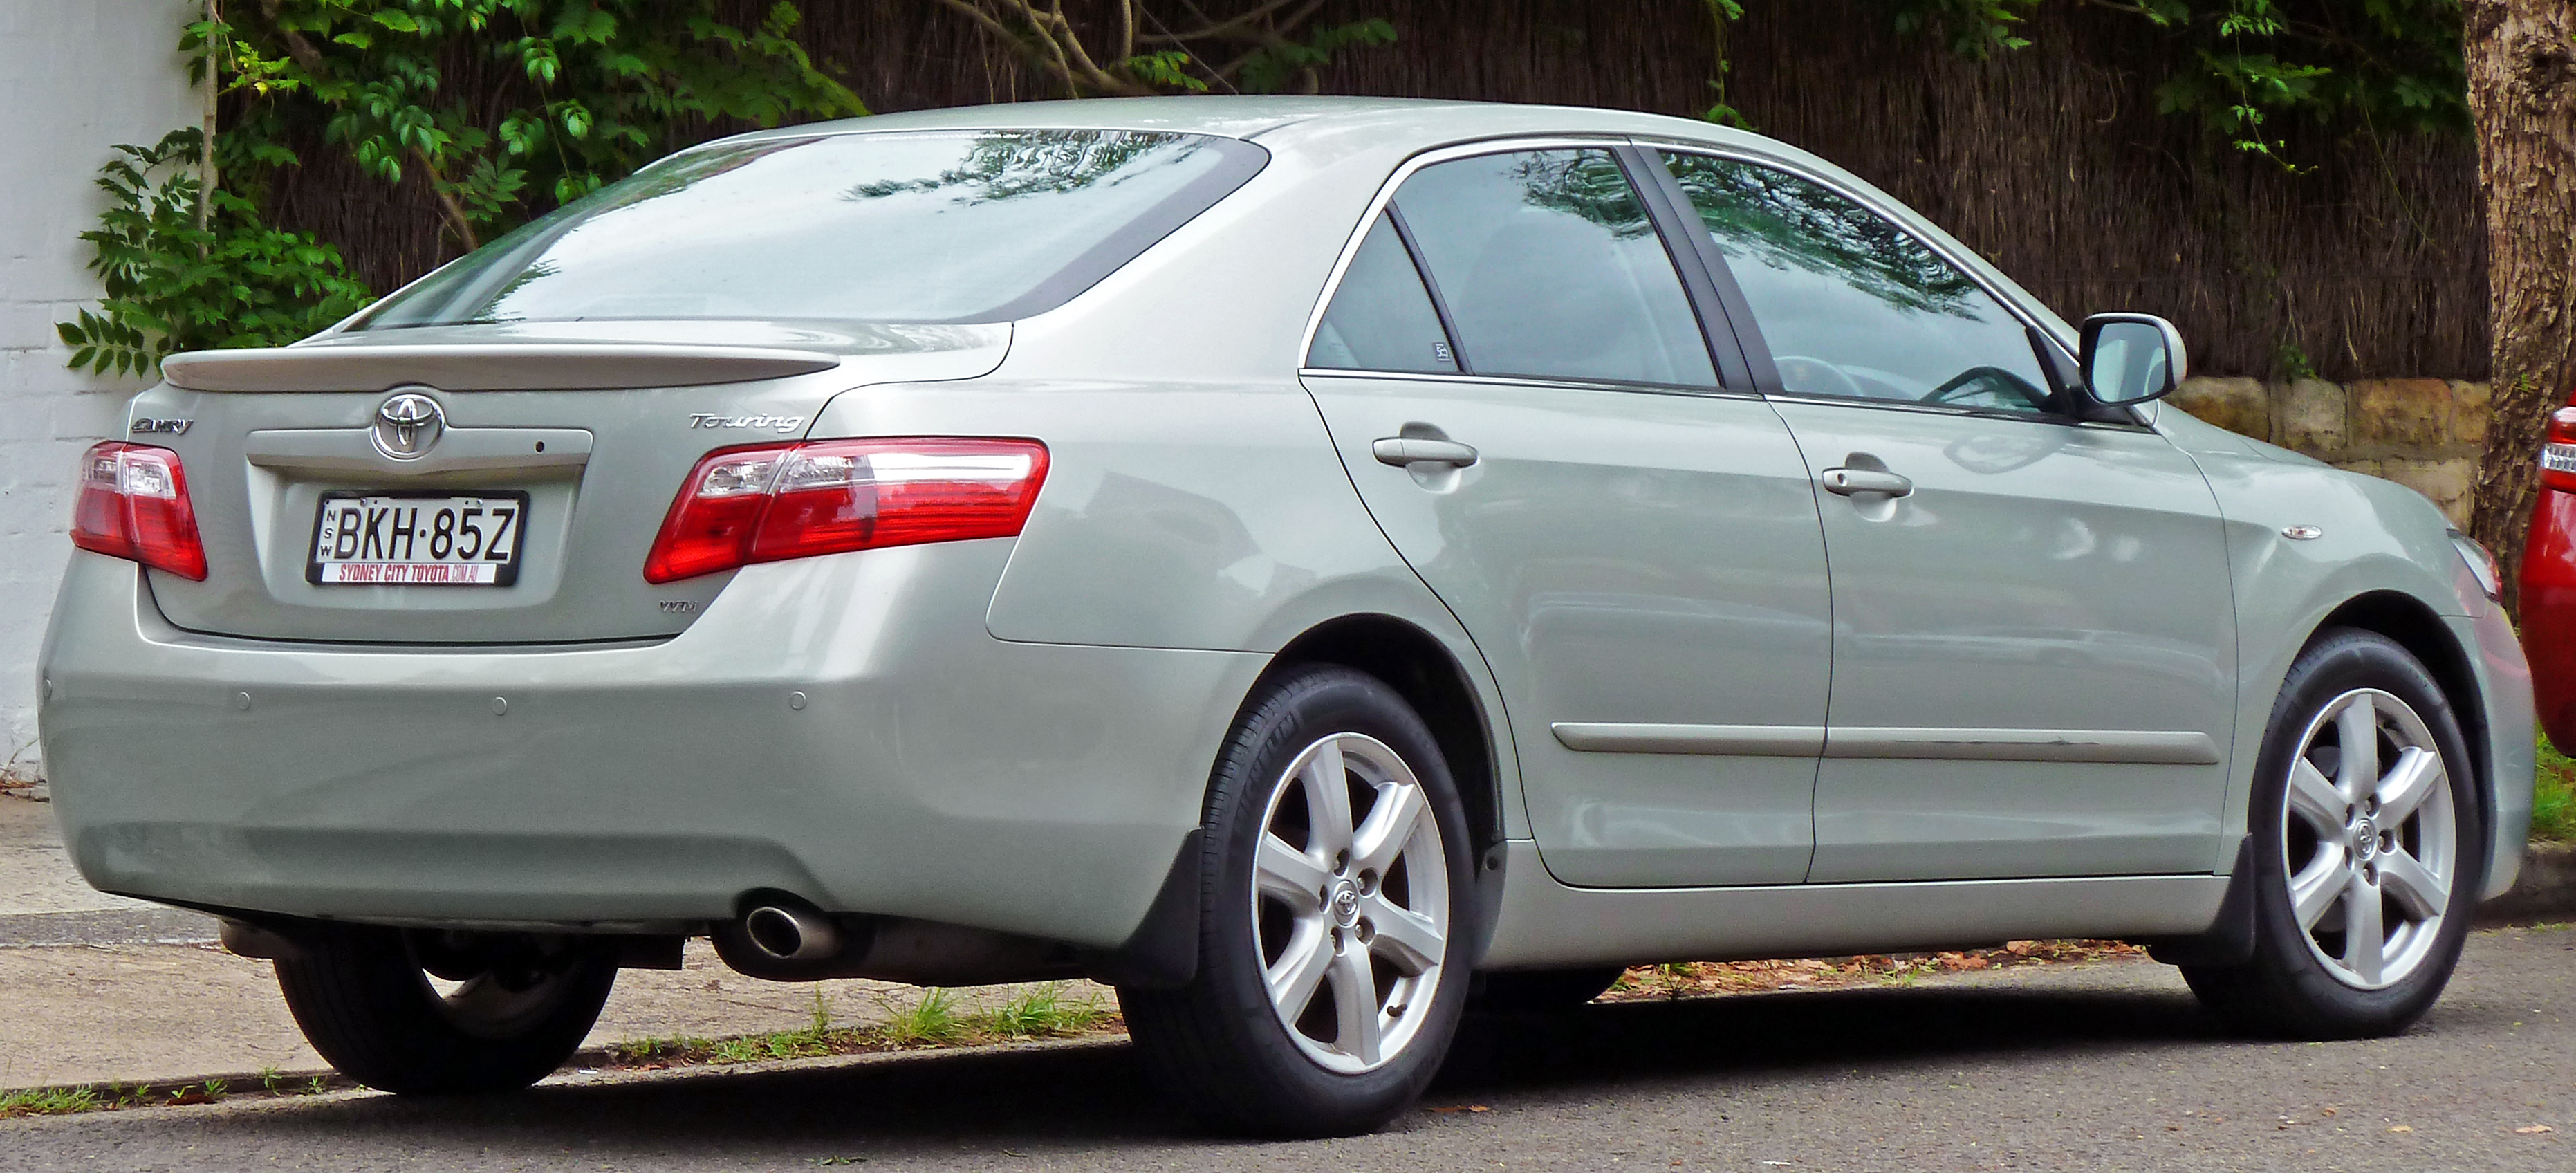 File:2009 Toyota Camry (ACV40R) Touring sedan (2011-01-13).jpg - Wikimedia Commons